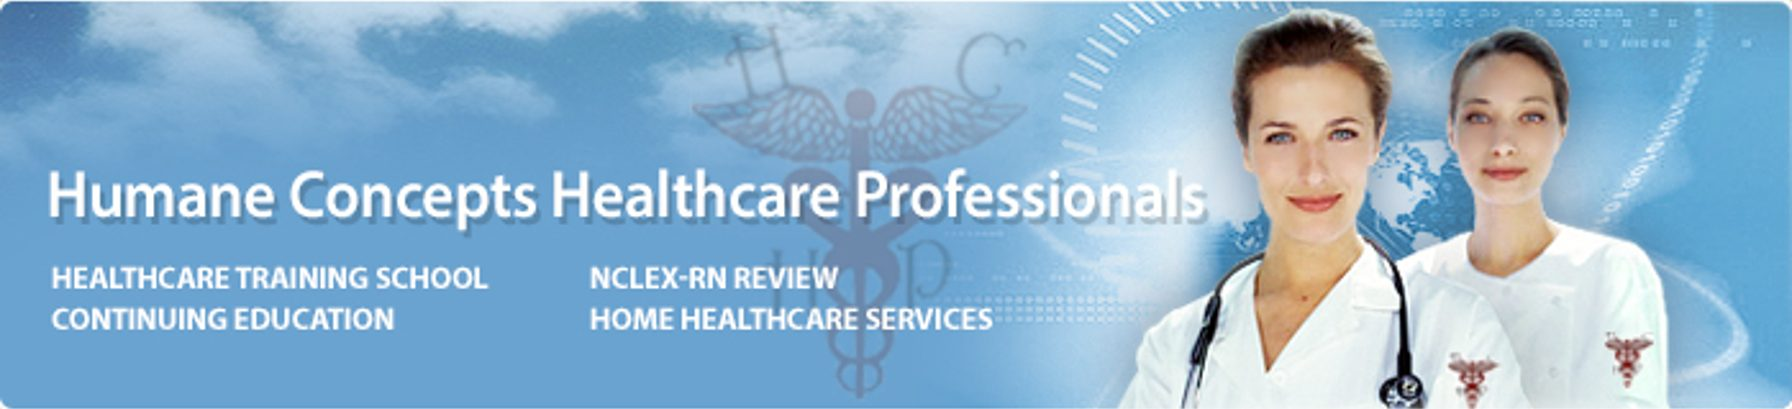 Humane Concepts HealthCare Professionals